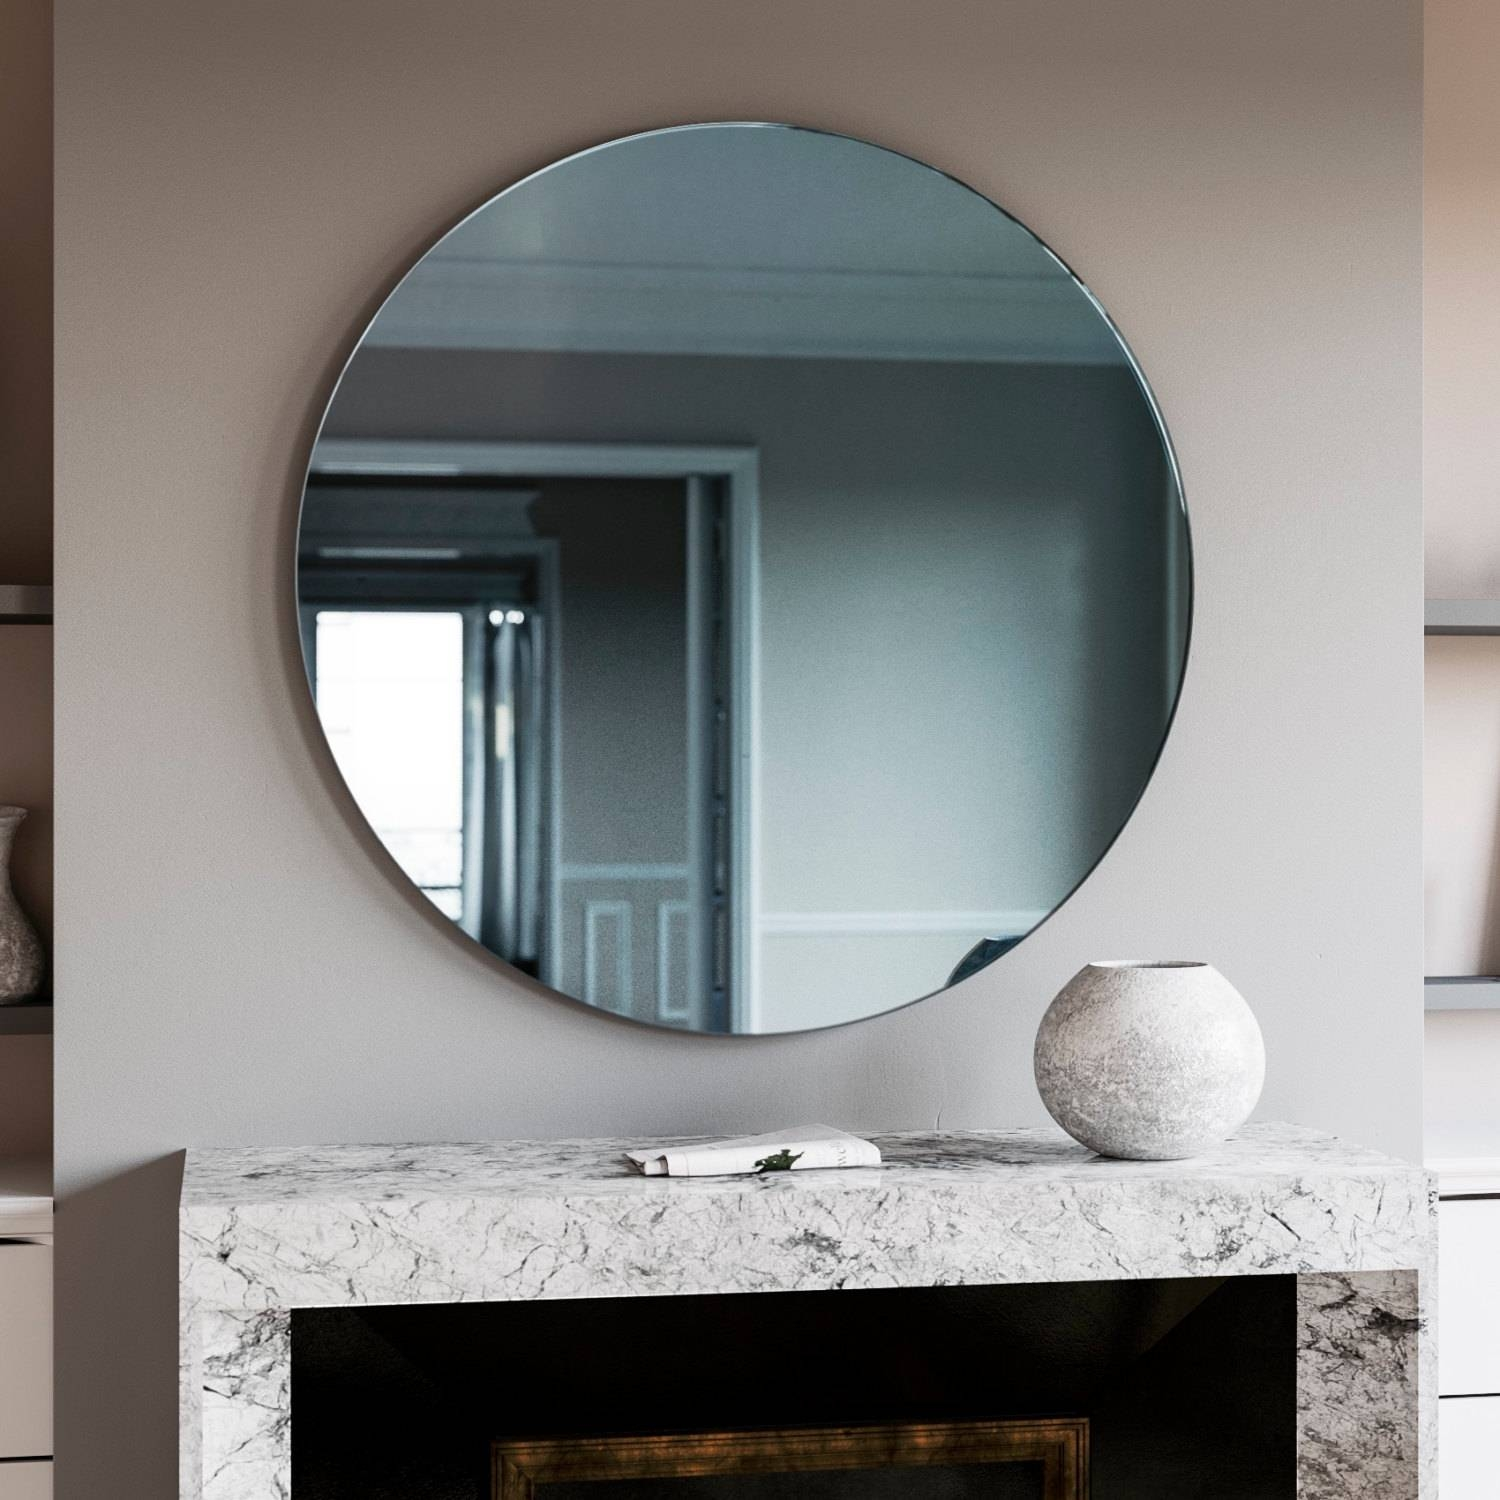 Round Mirror. Blue Round Art Deco Wall Mirror Made With in Round Art Deco Mirrors (Image 13 of 15)